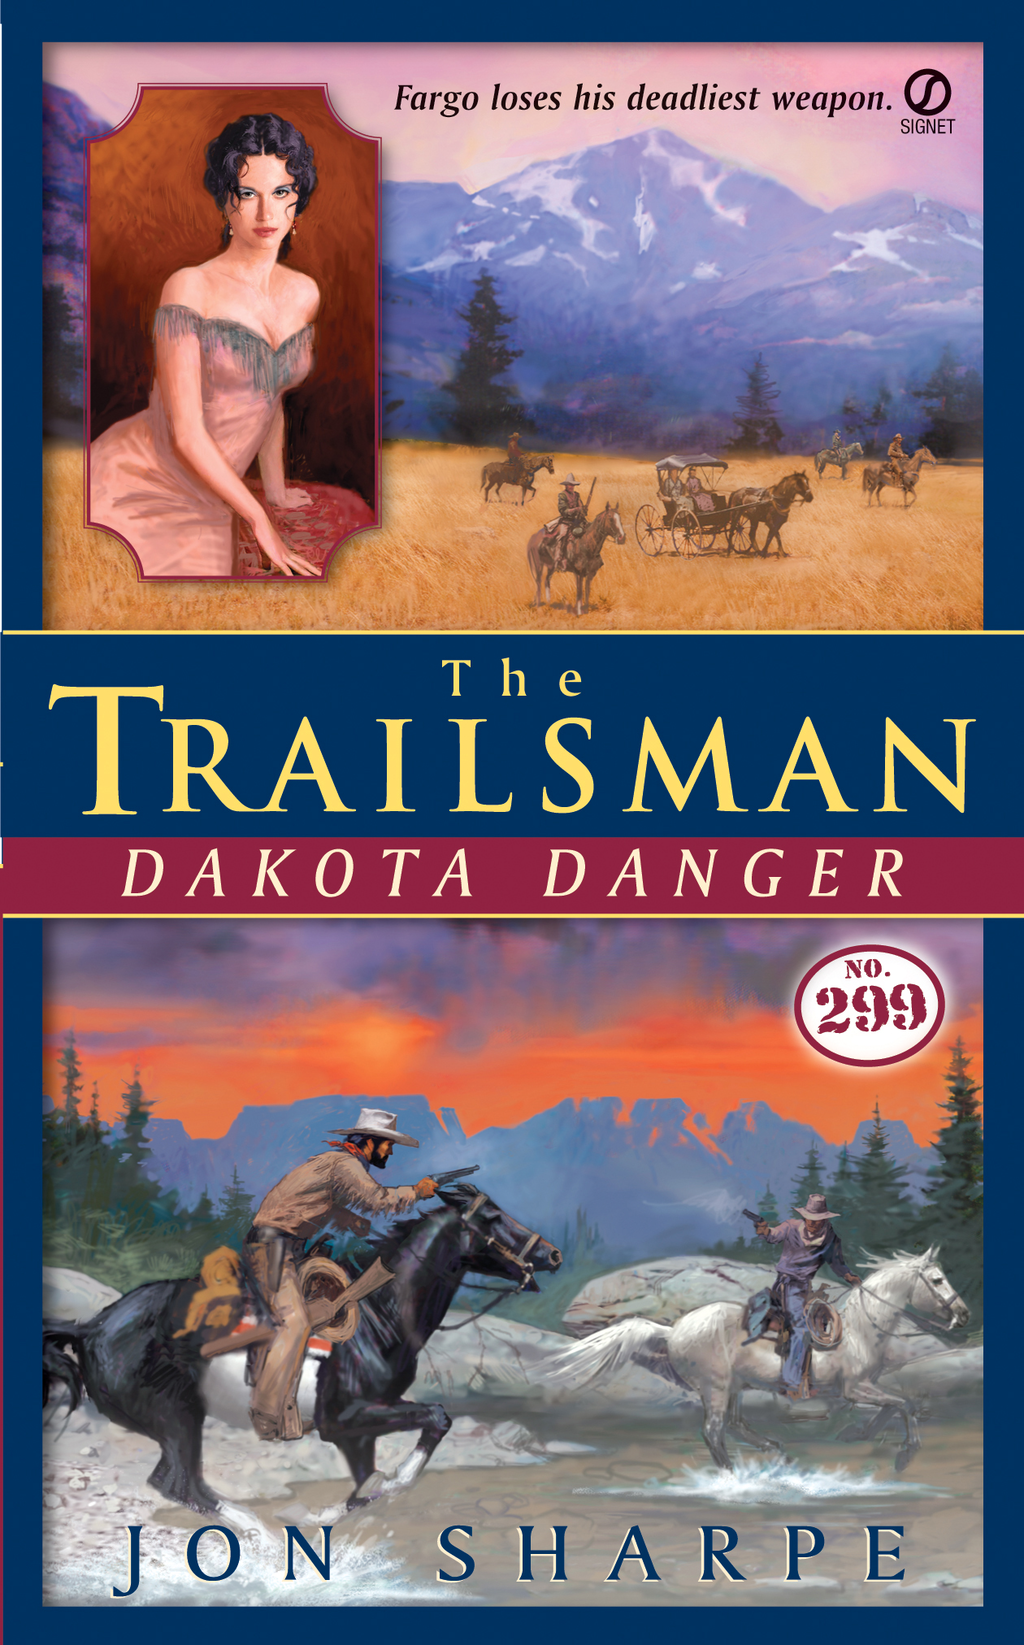 The Trailsman #299